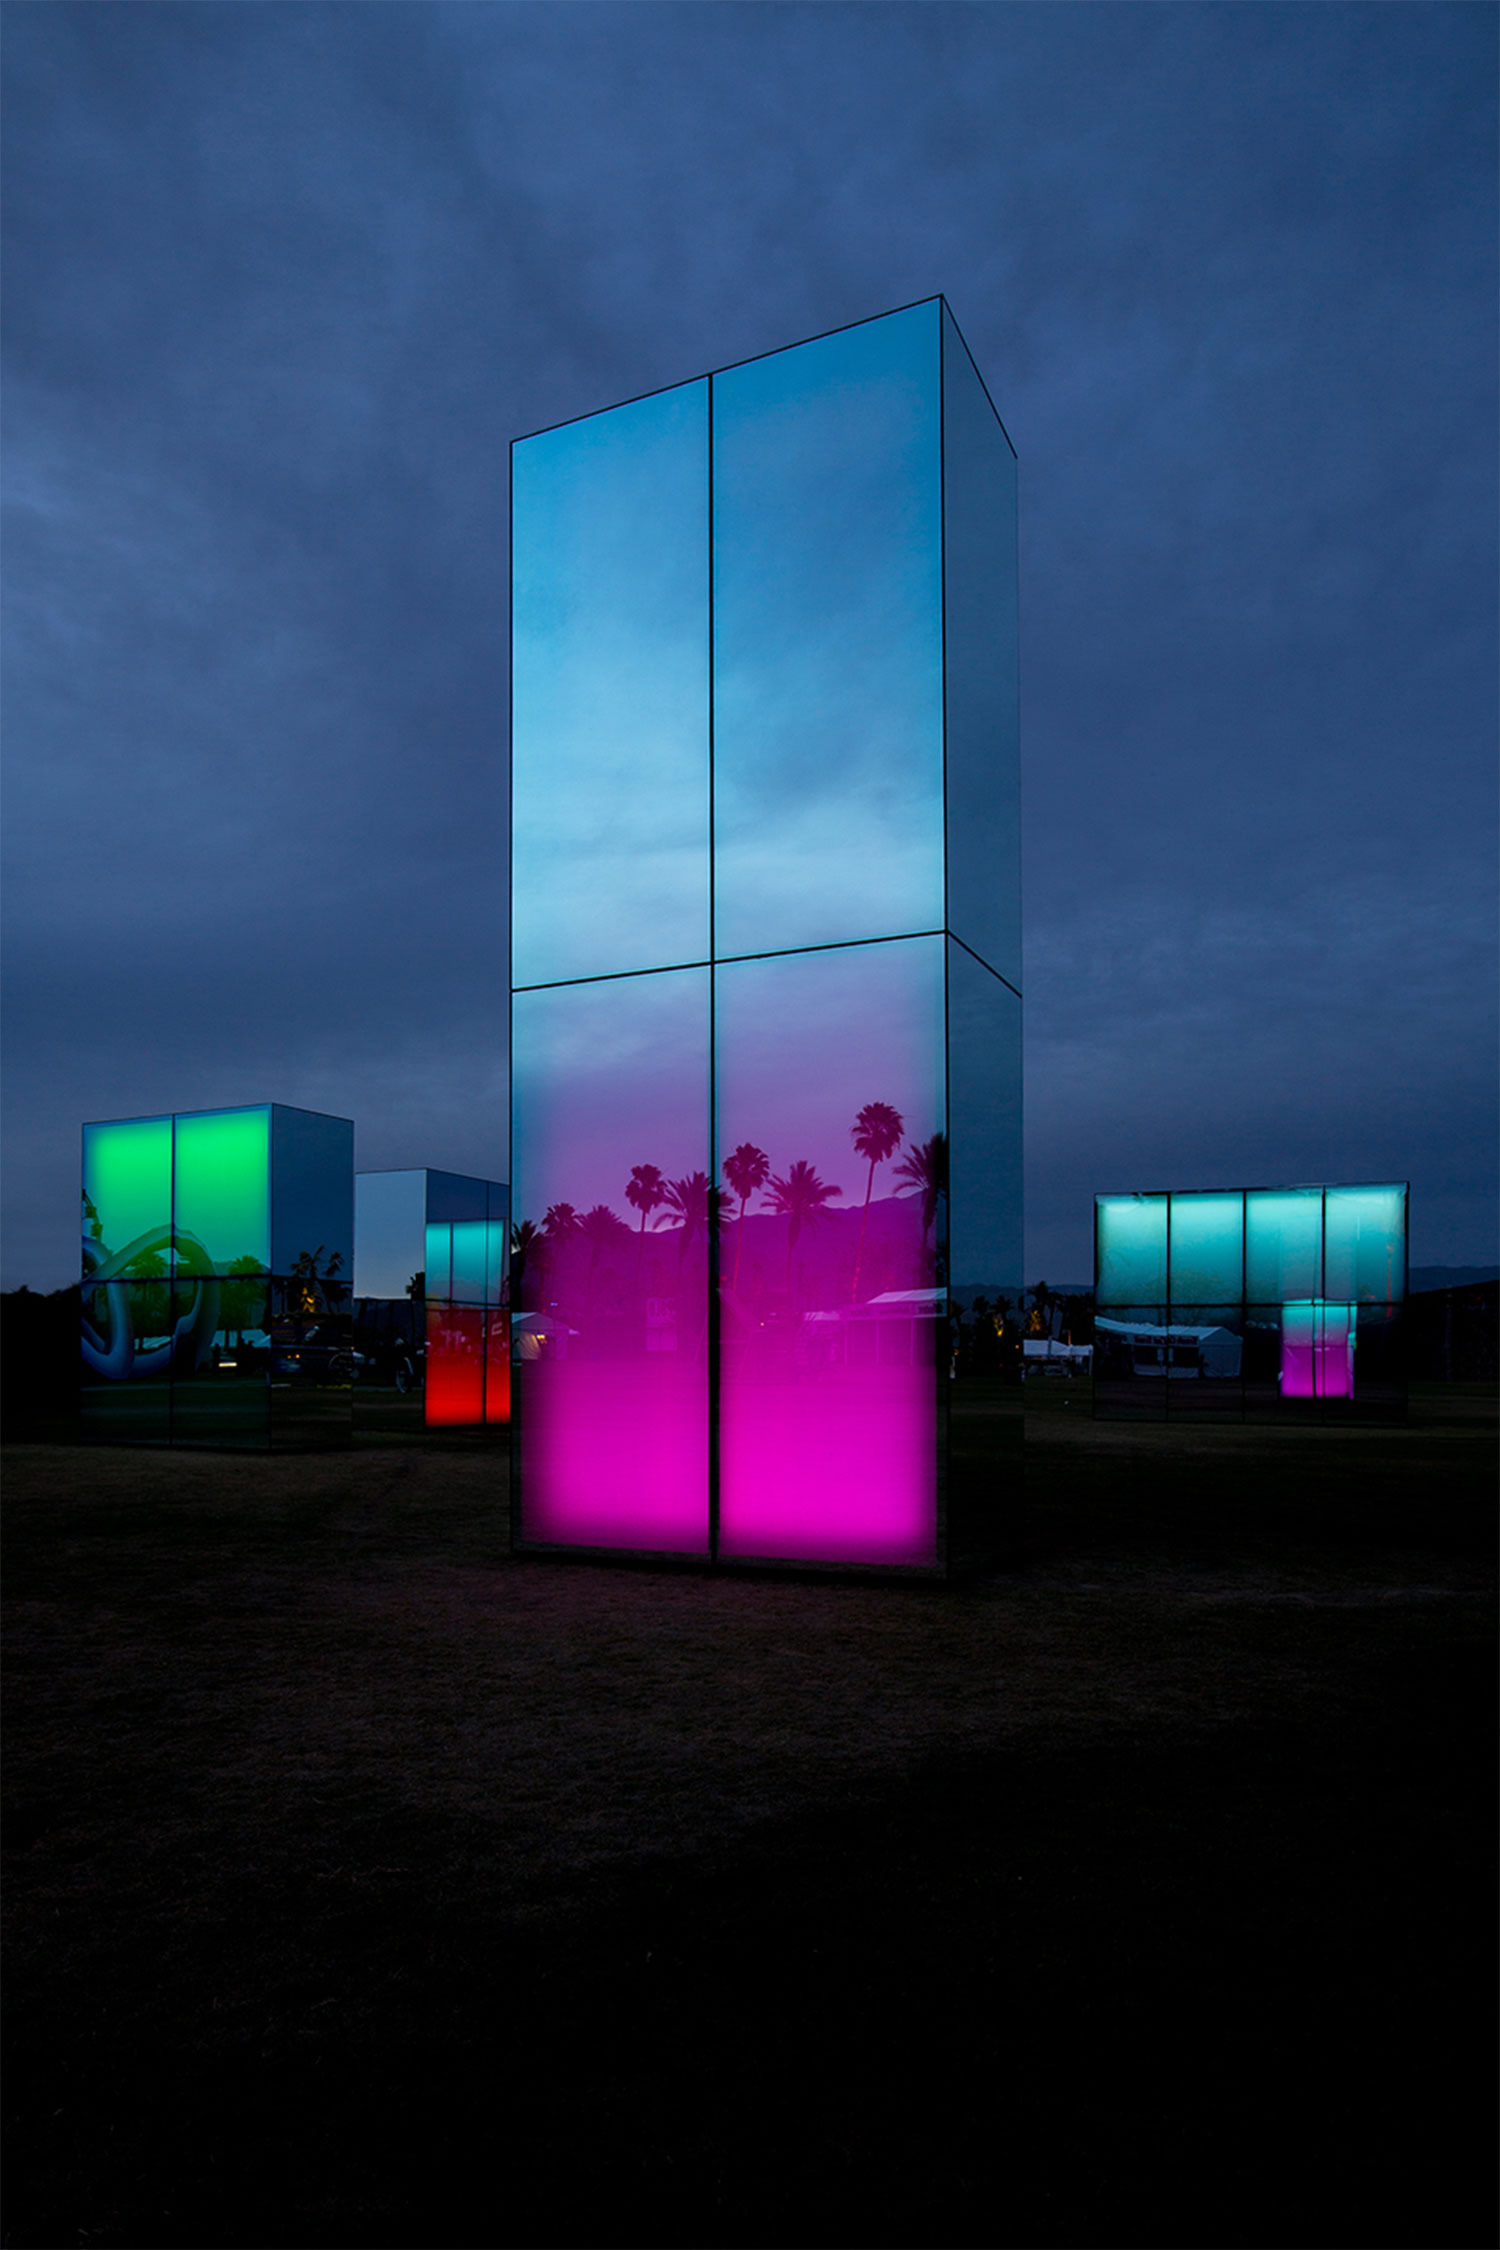 palm trees reflected on mirror blocks by philip k smith